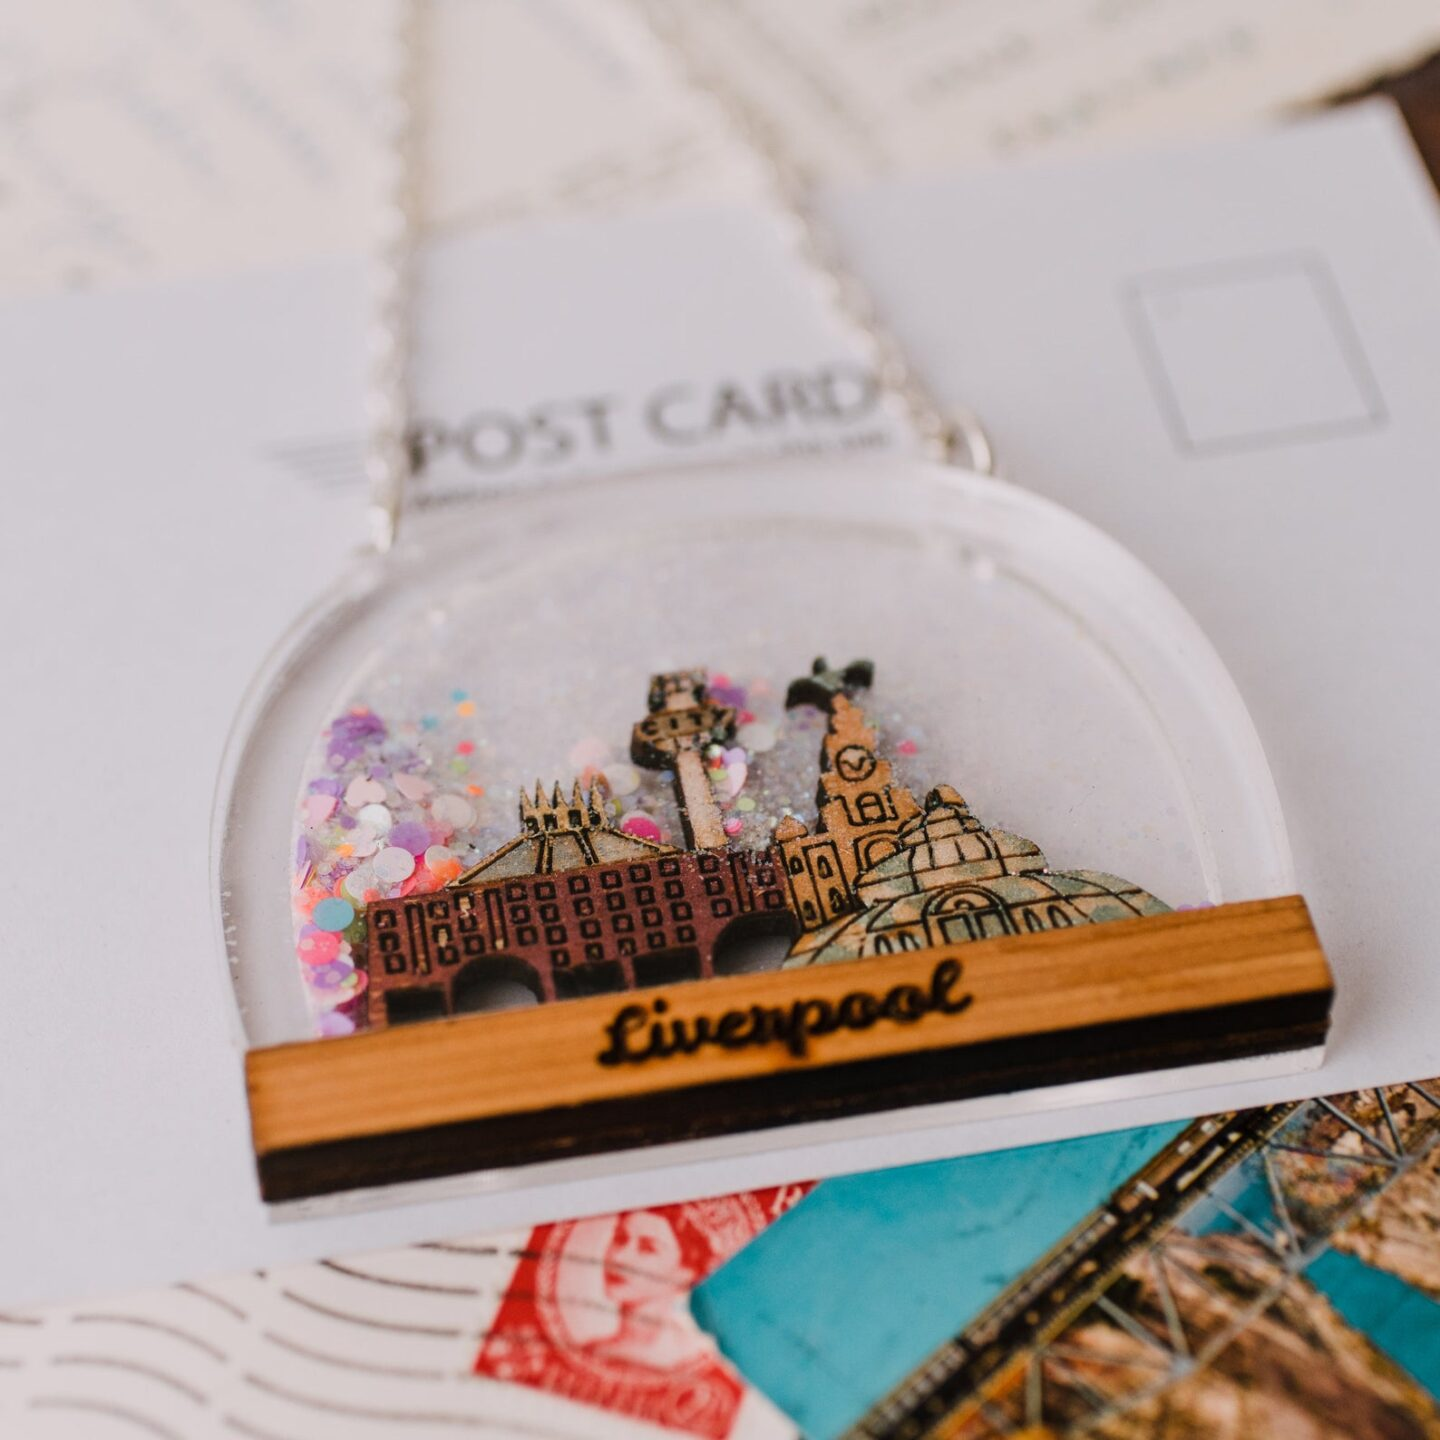 a dome shaped clear perspex pendant on a silver chain. Inside the perspex is a wooden carving of famous Liverpool landmarks sitting atop a piece of wood engraved with the word Liverpool.